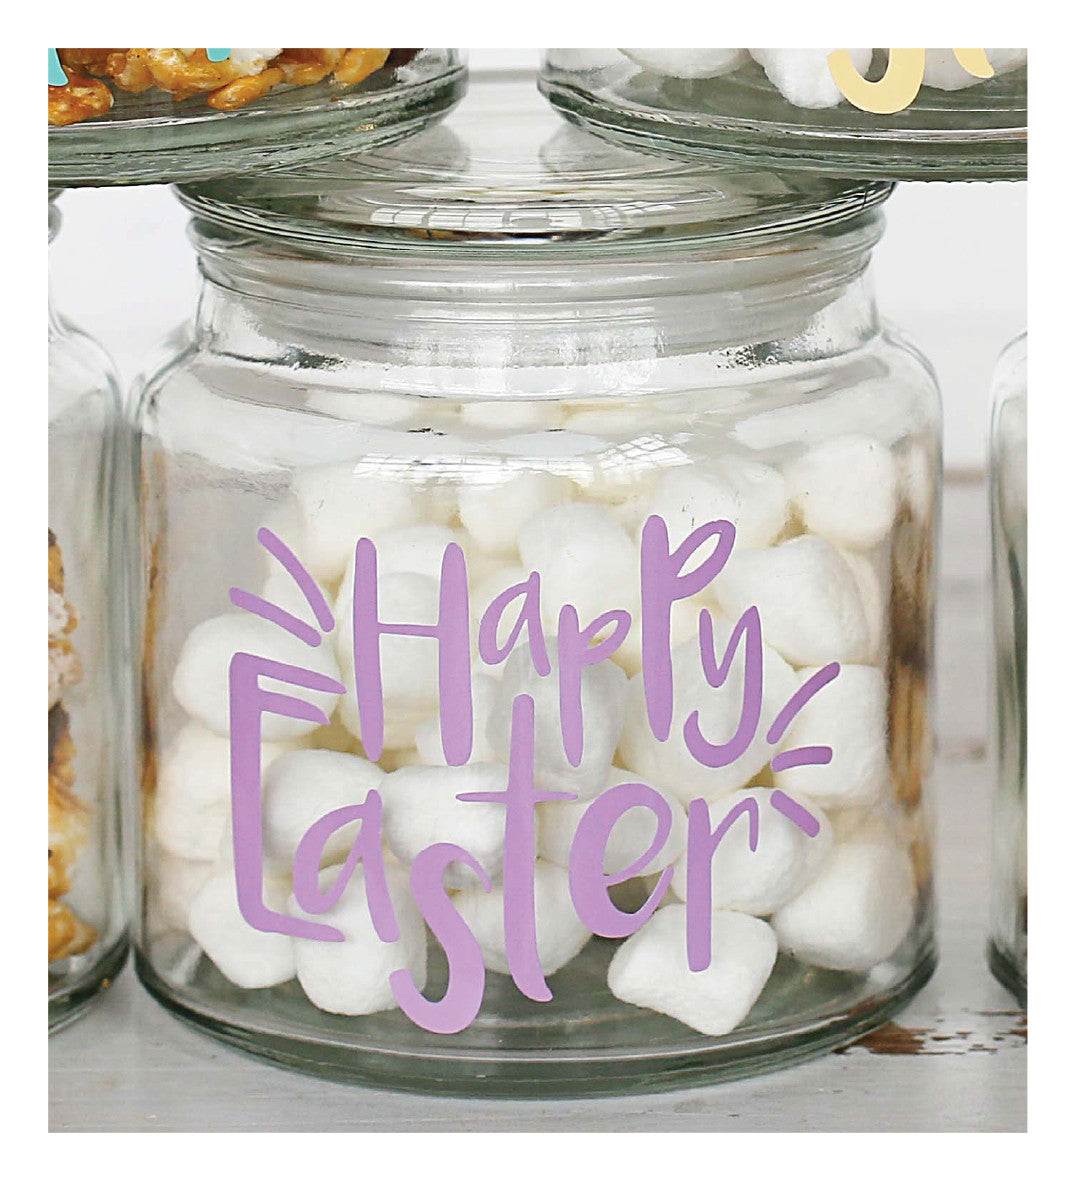 Happy Easter Lidded Jars!